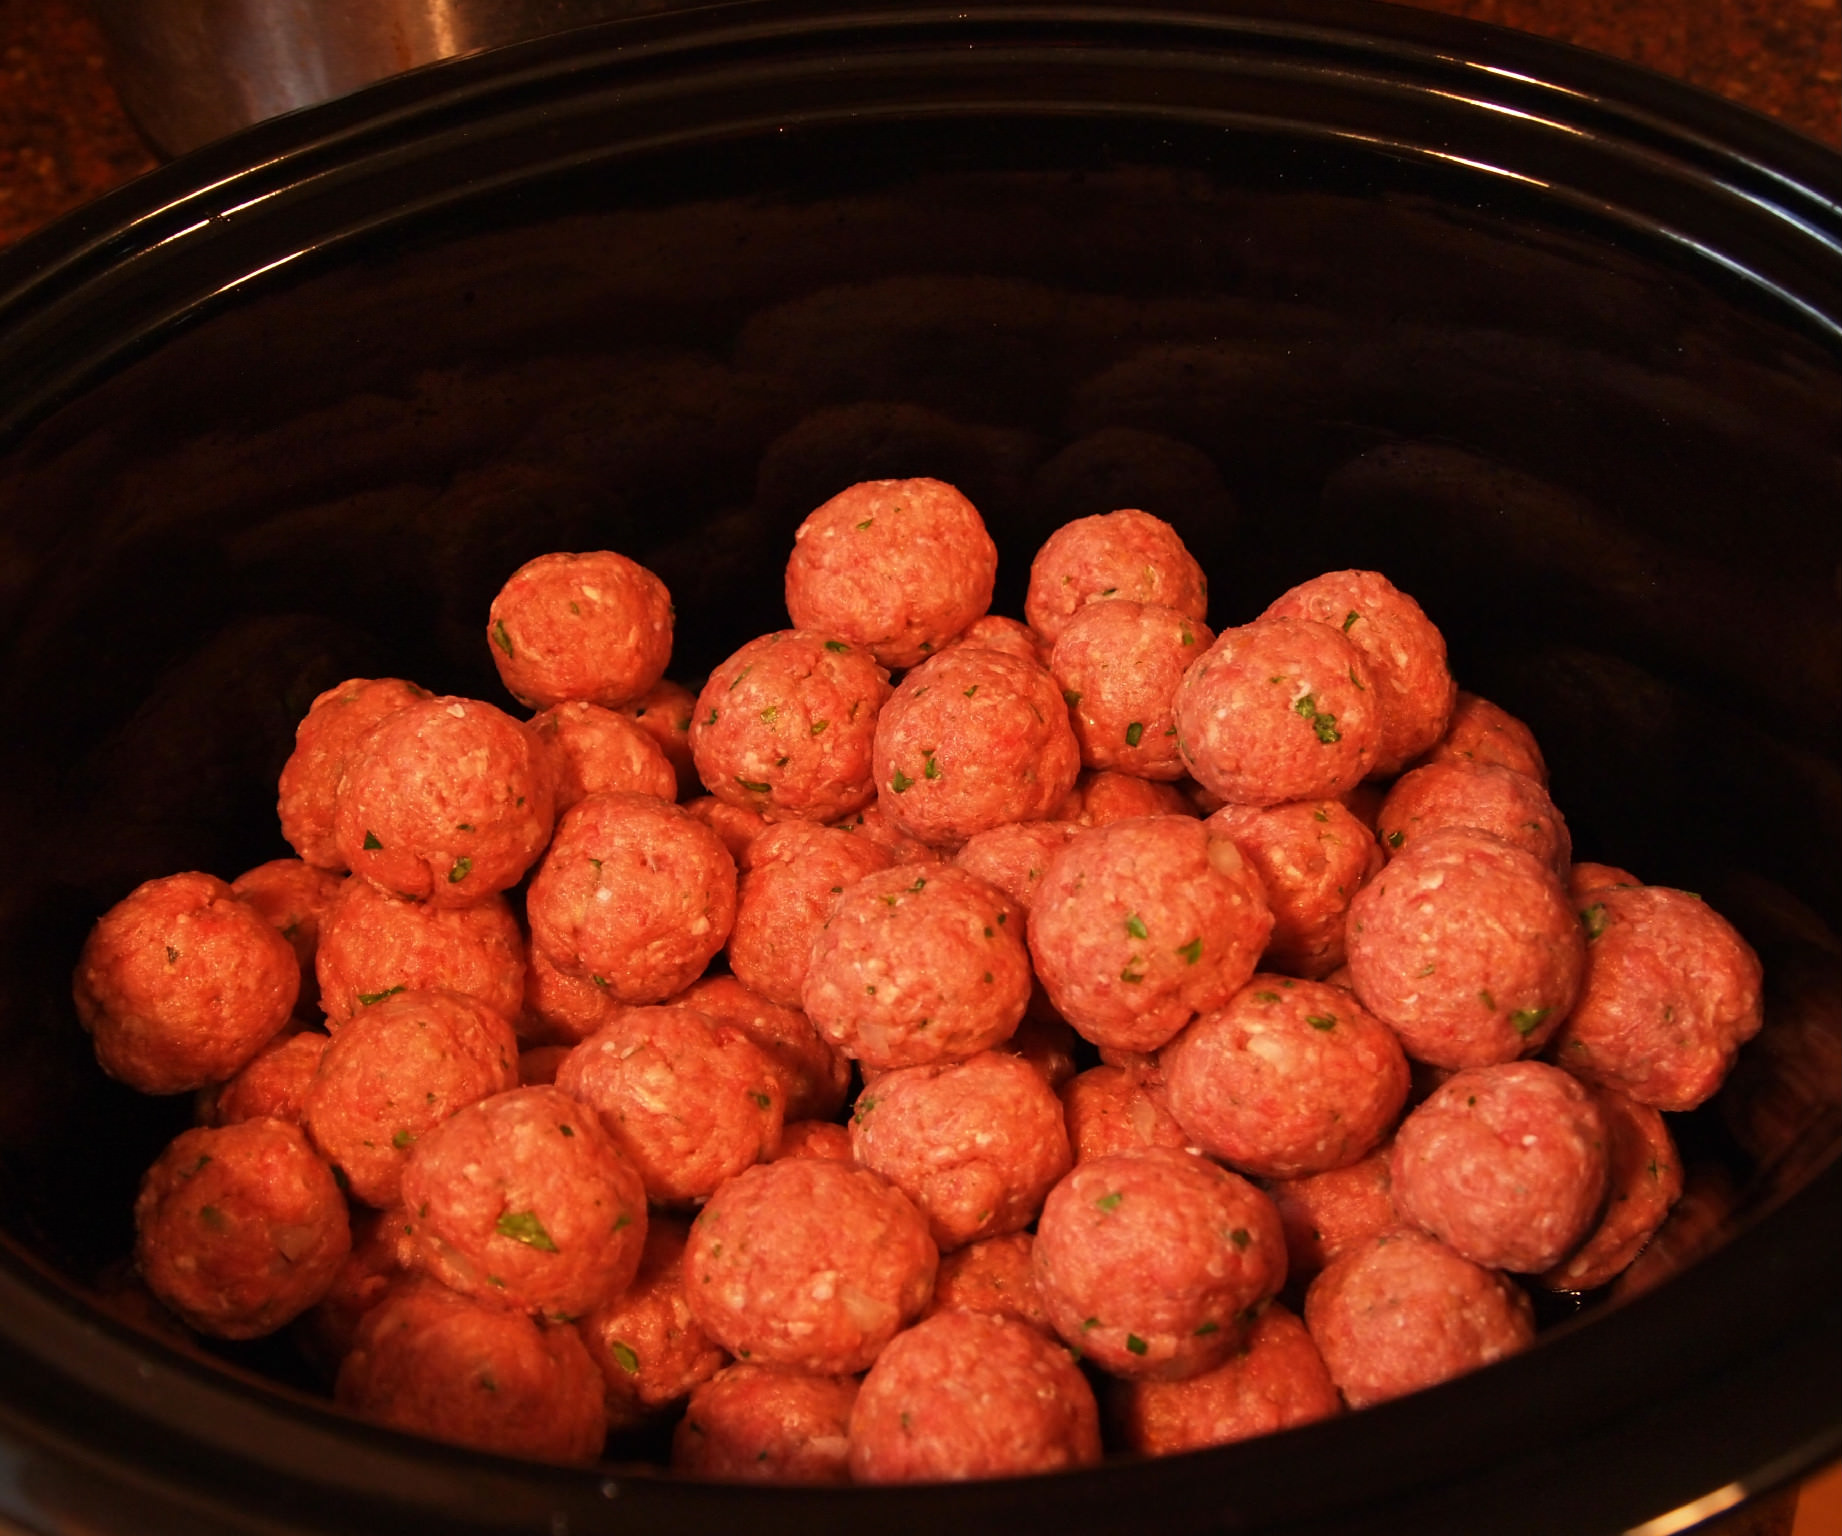 Game Day Meatballs are simmered all day in a crock pot until super tender and bathed in a flavorful sweet & spicy sauce made with grape jelly. | ComfortablyDomestic.com